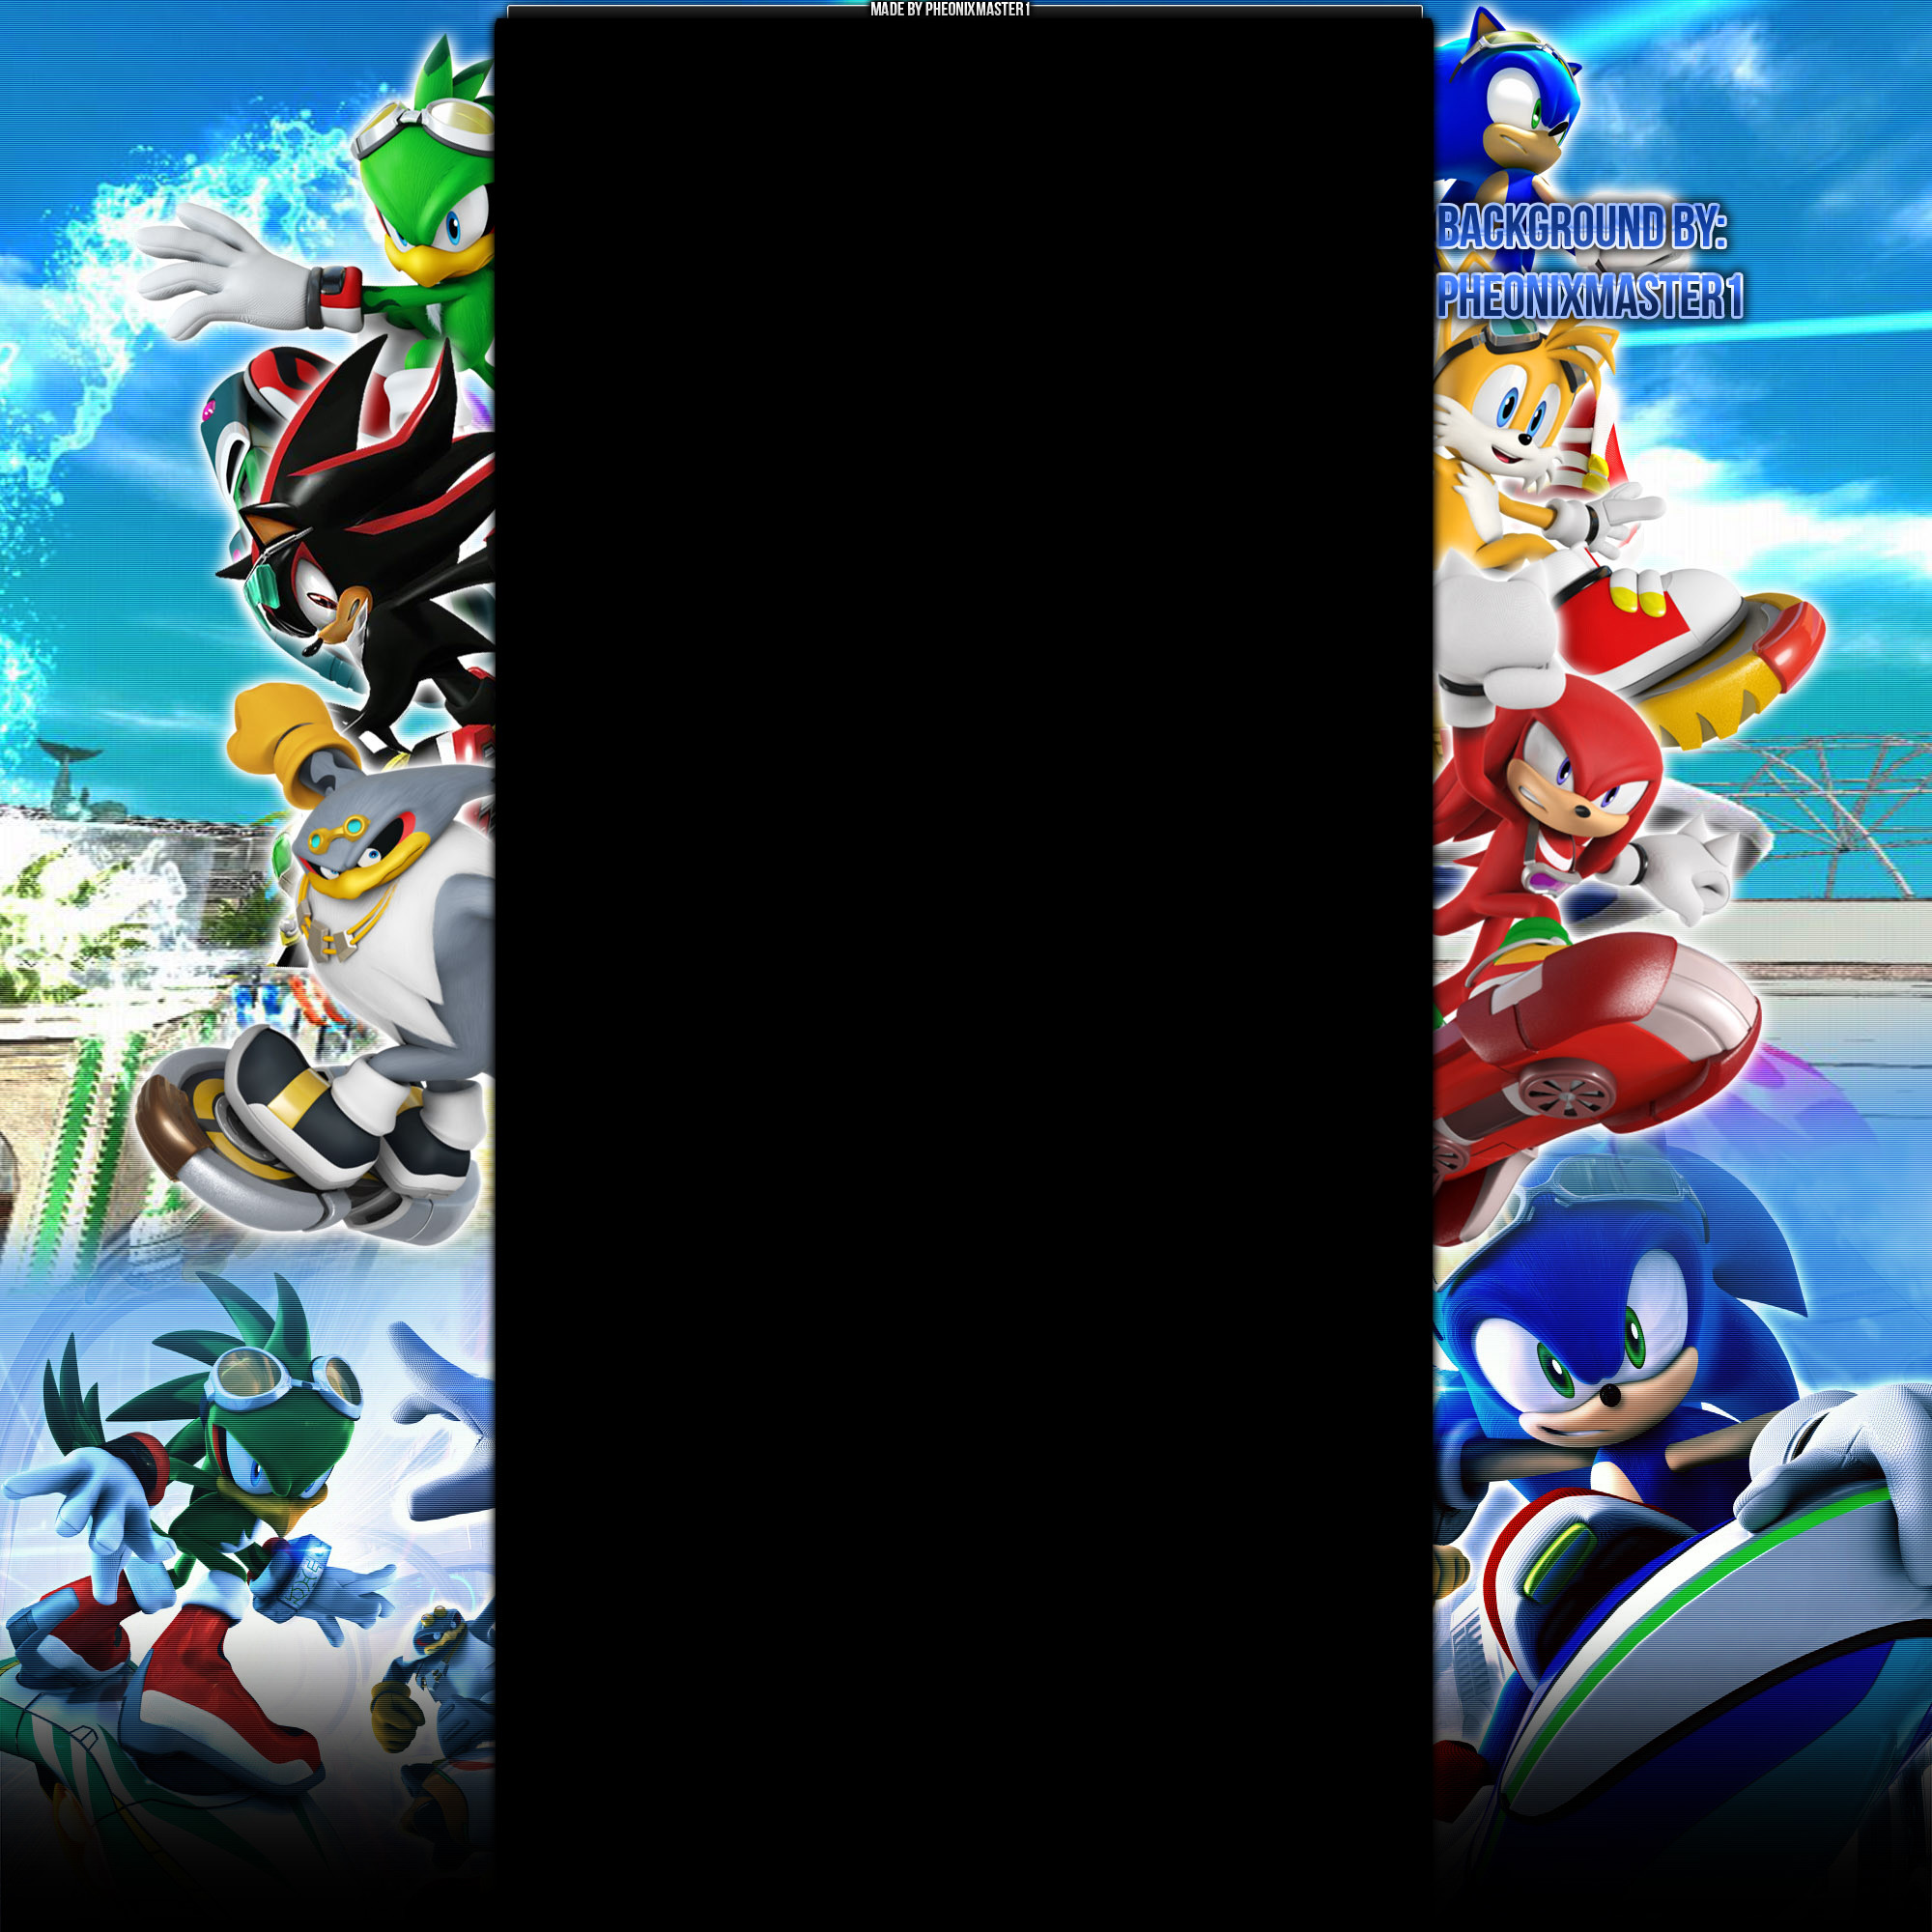 Sonic Riders Youtube background by Pheonixmaster1 Sonic Riders Youtube  background by Pheonixmaster1